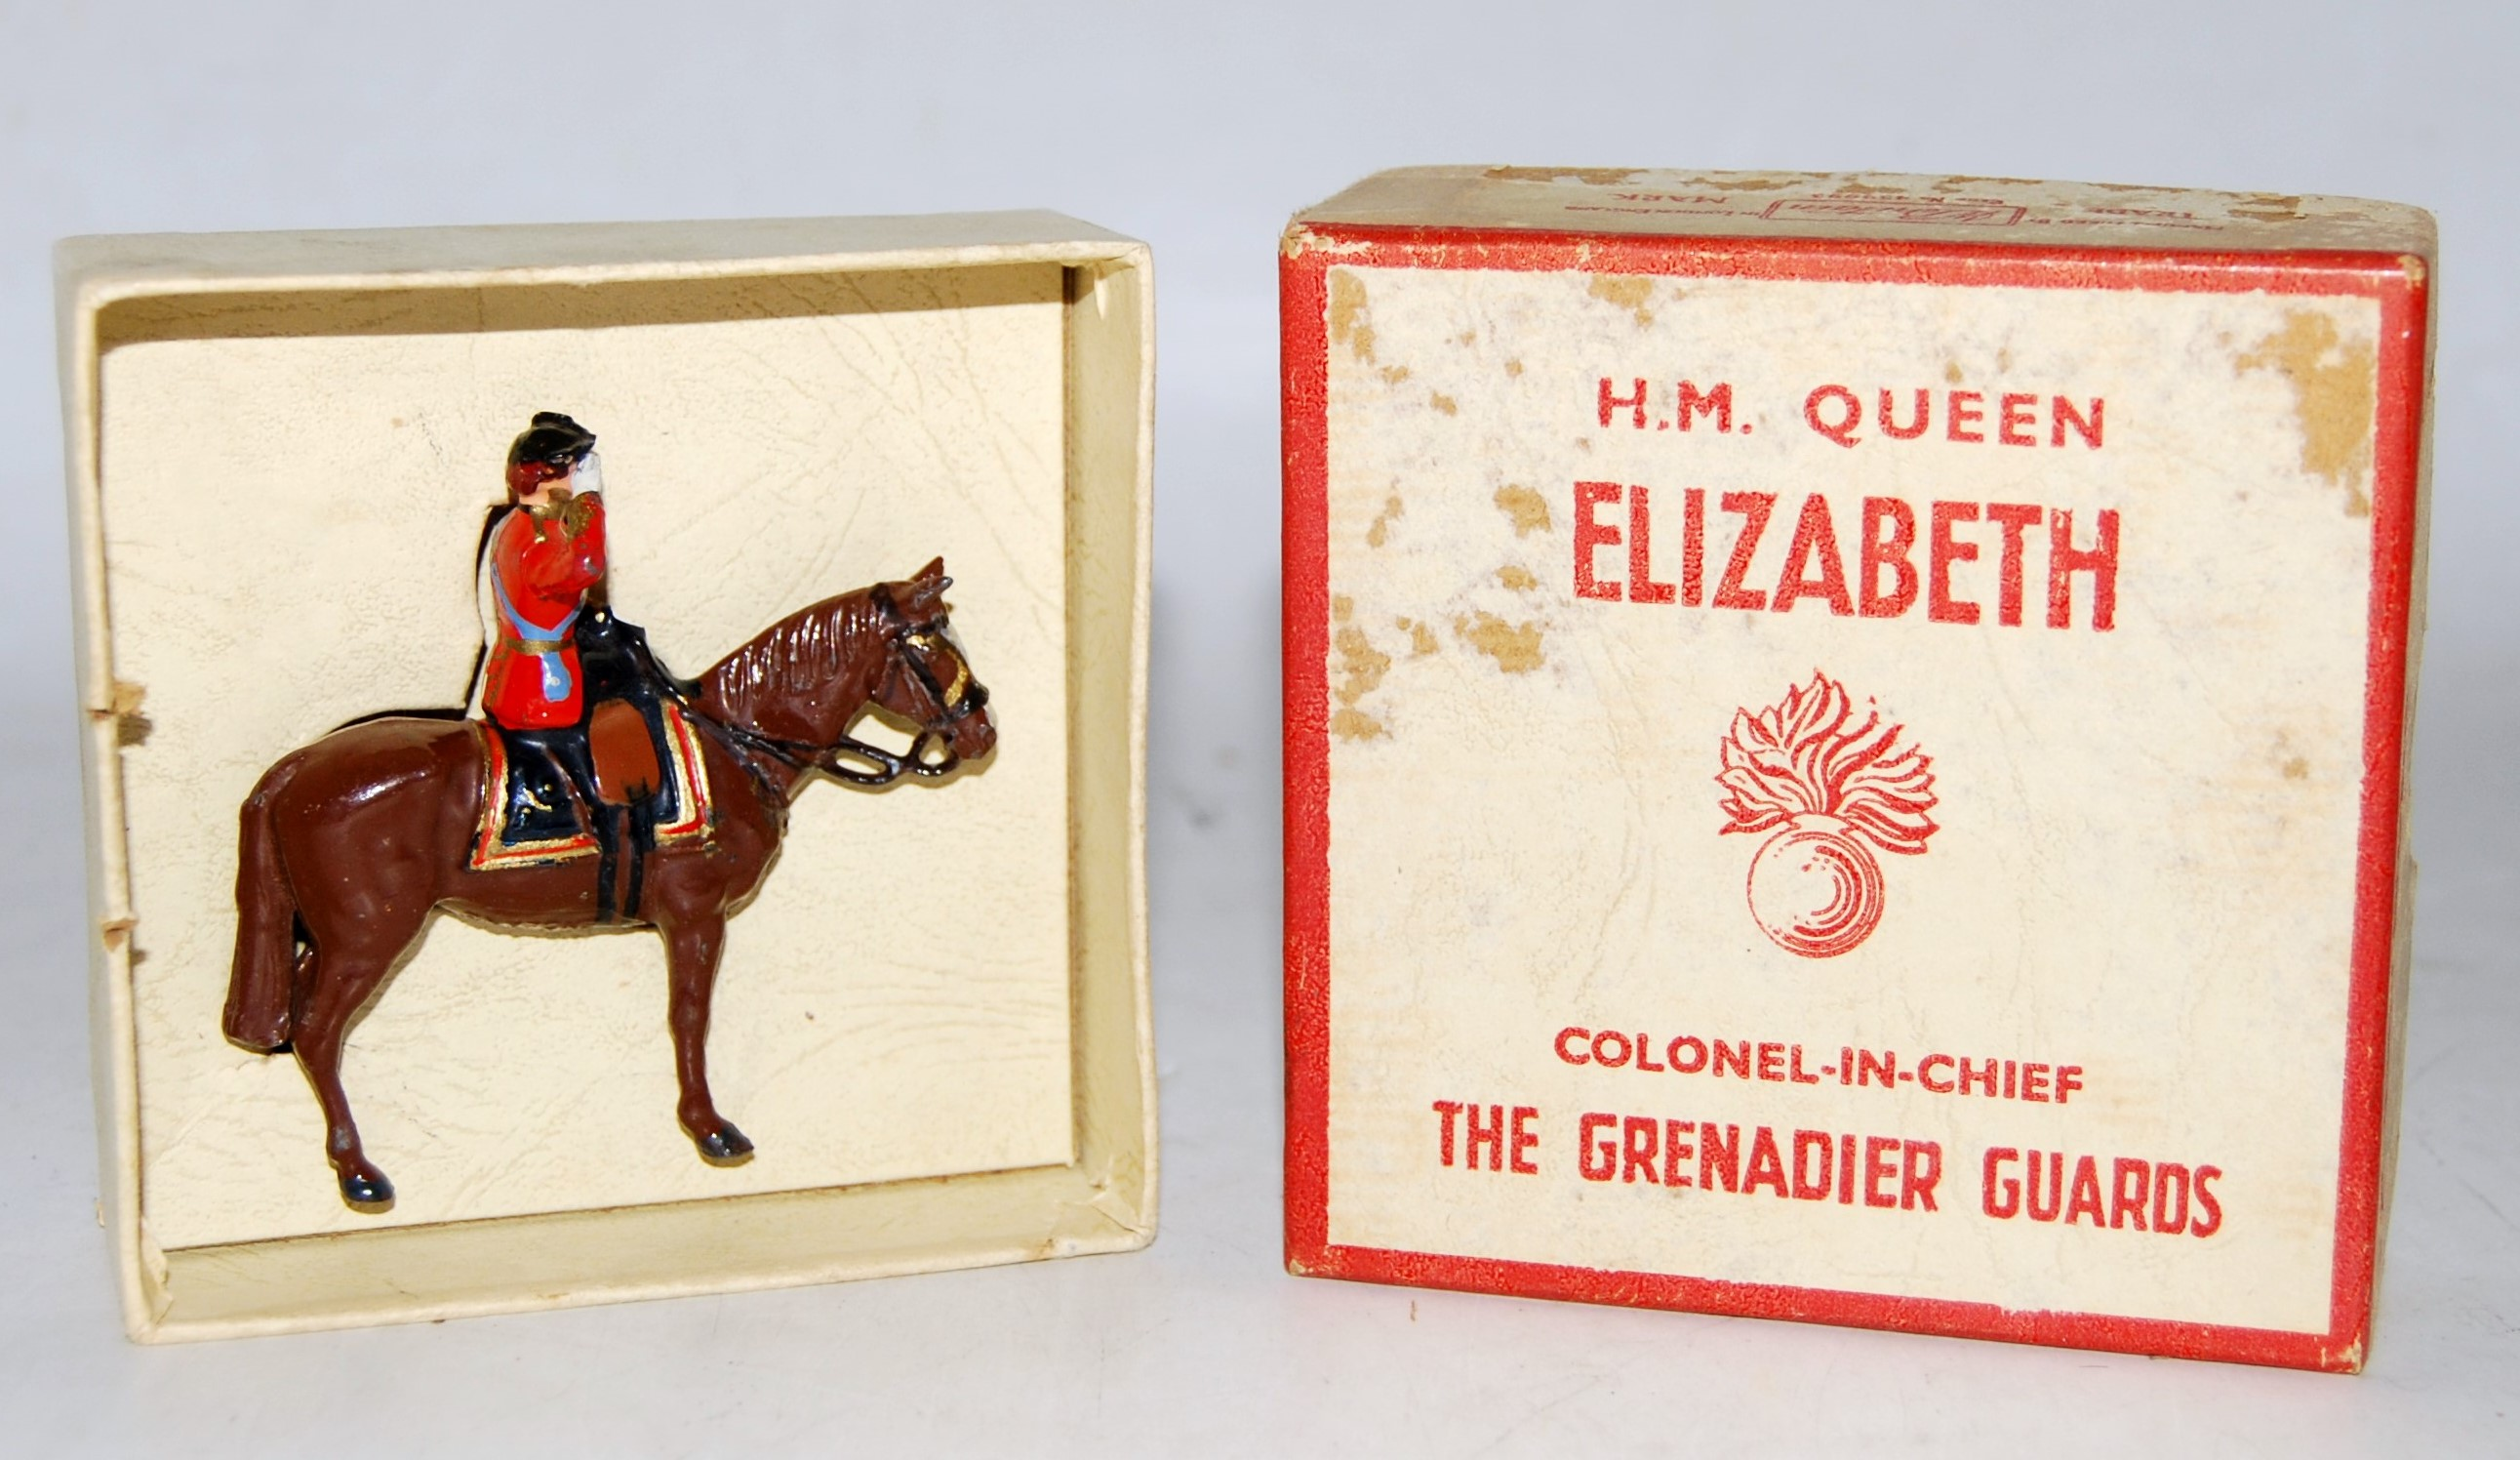 A Britains No. 2065 HM Queen Elizabeth The Grenadier Guards mounted side saddle, single issue figure